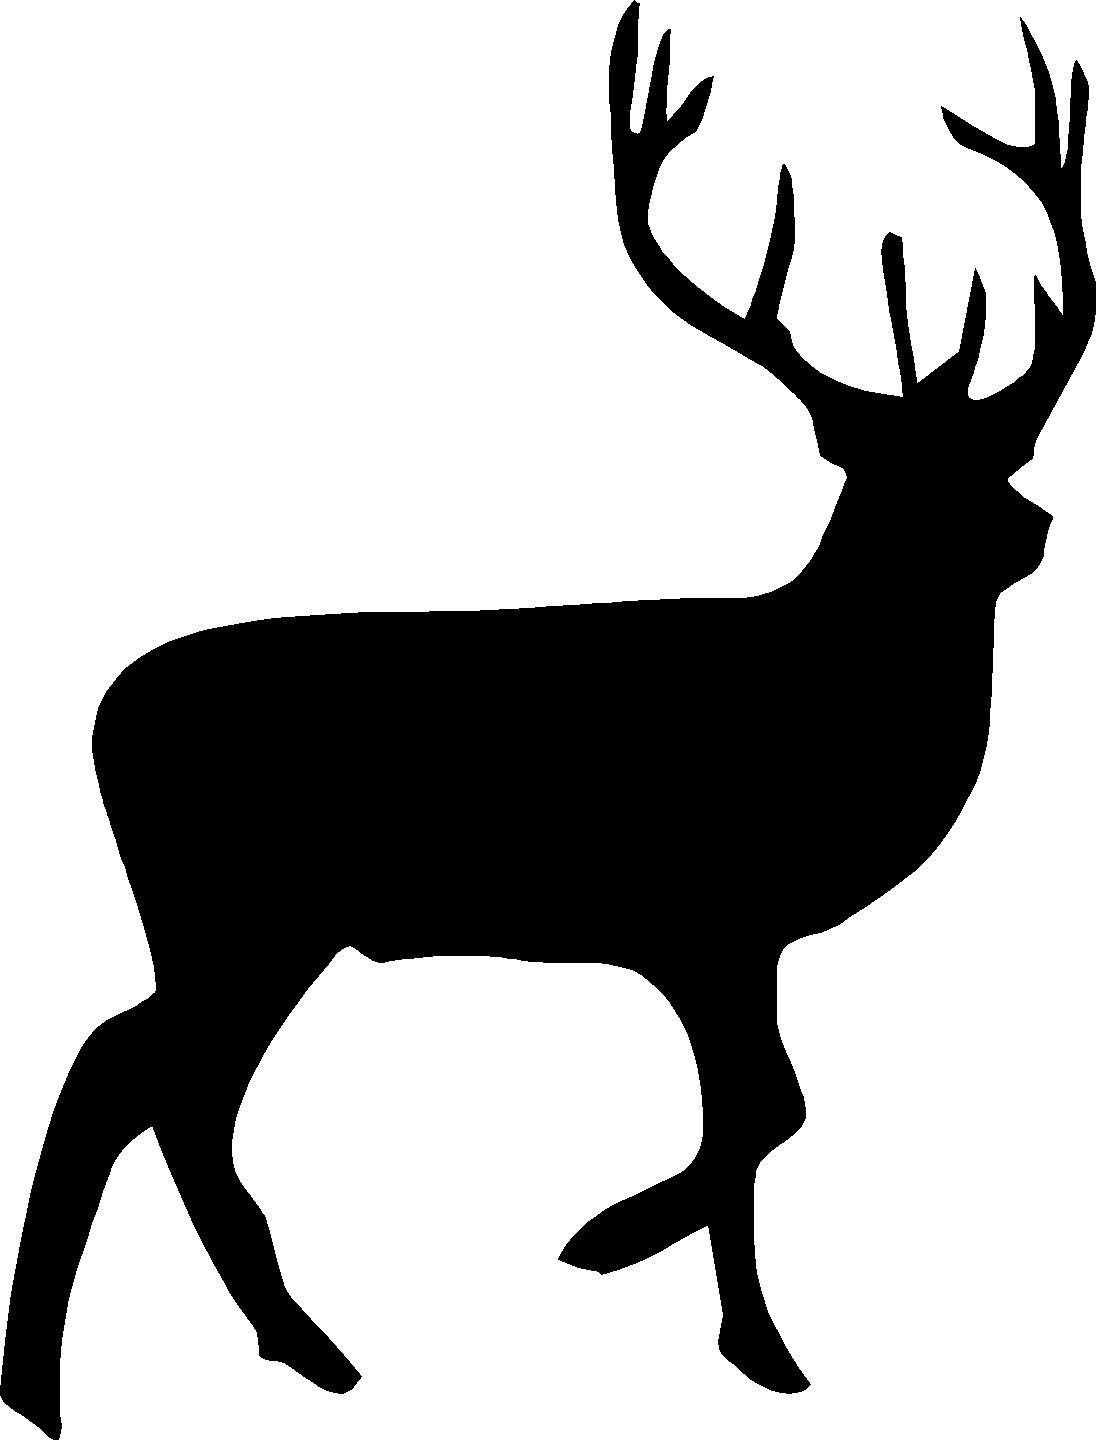 1096x1440 Elk Clipart Stag